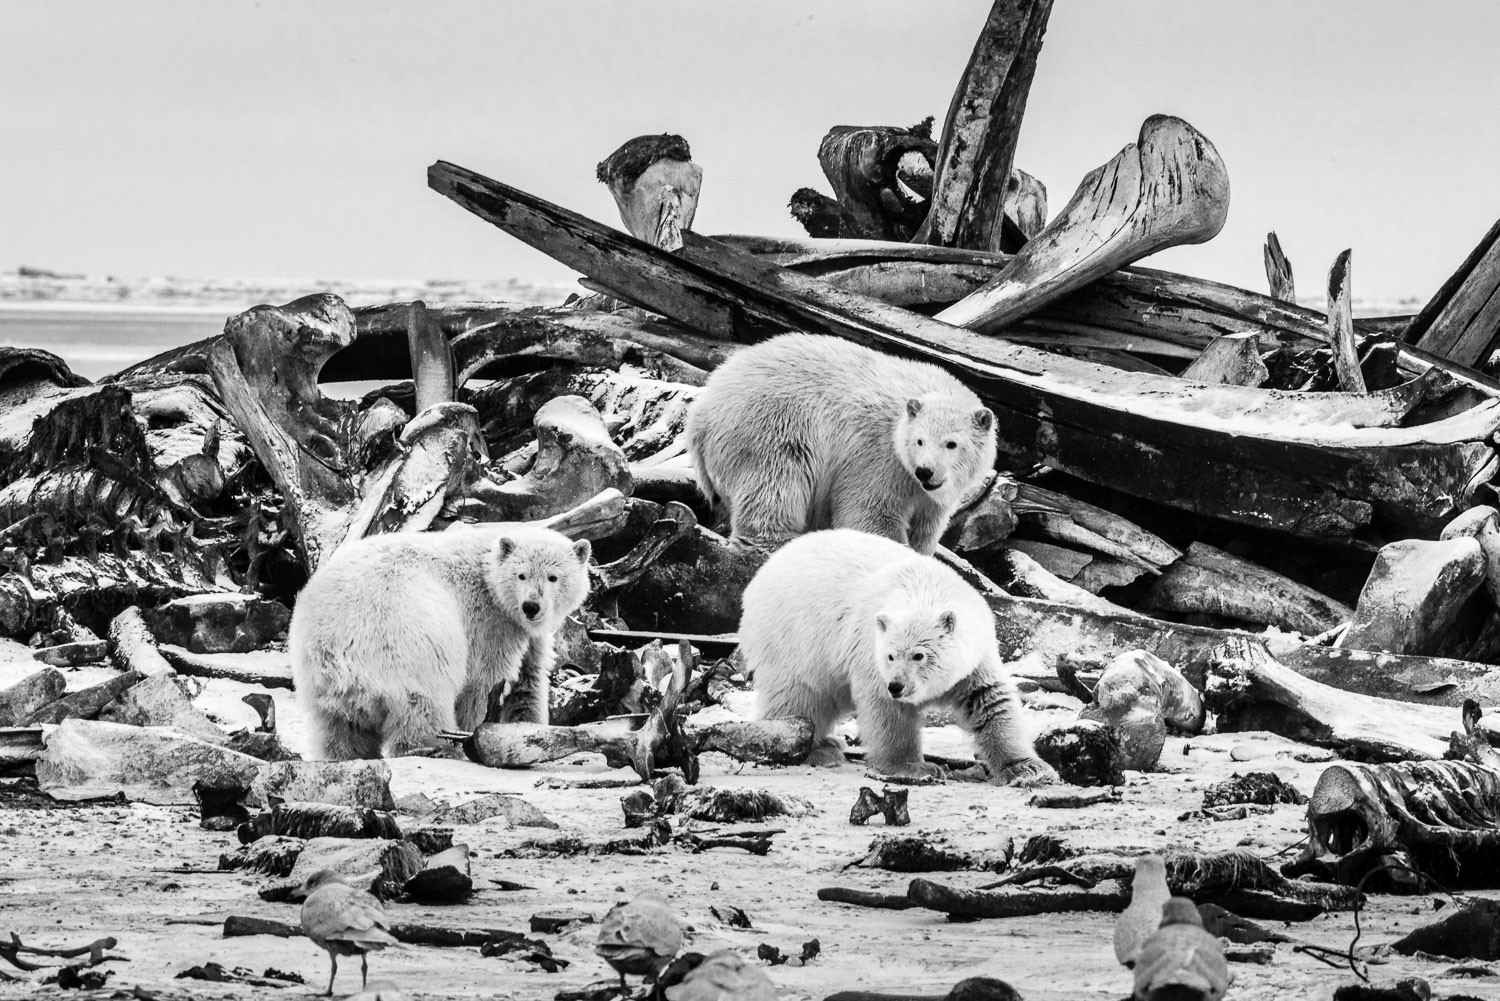 Black and White B&W Photograph of Young Polar Bears protecting t